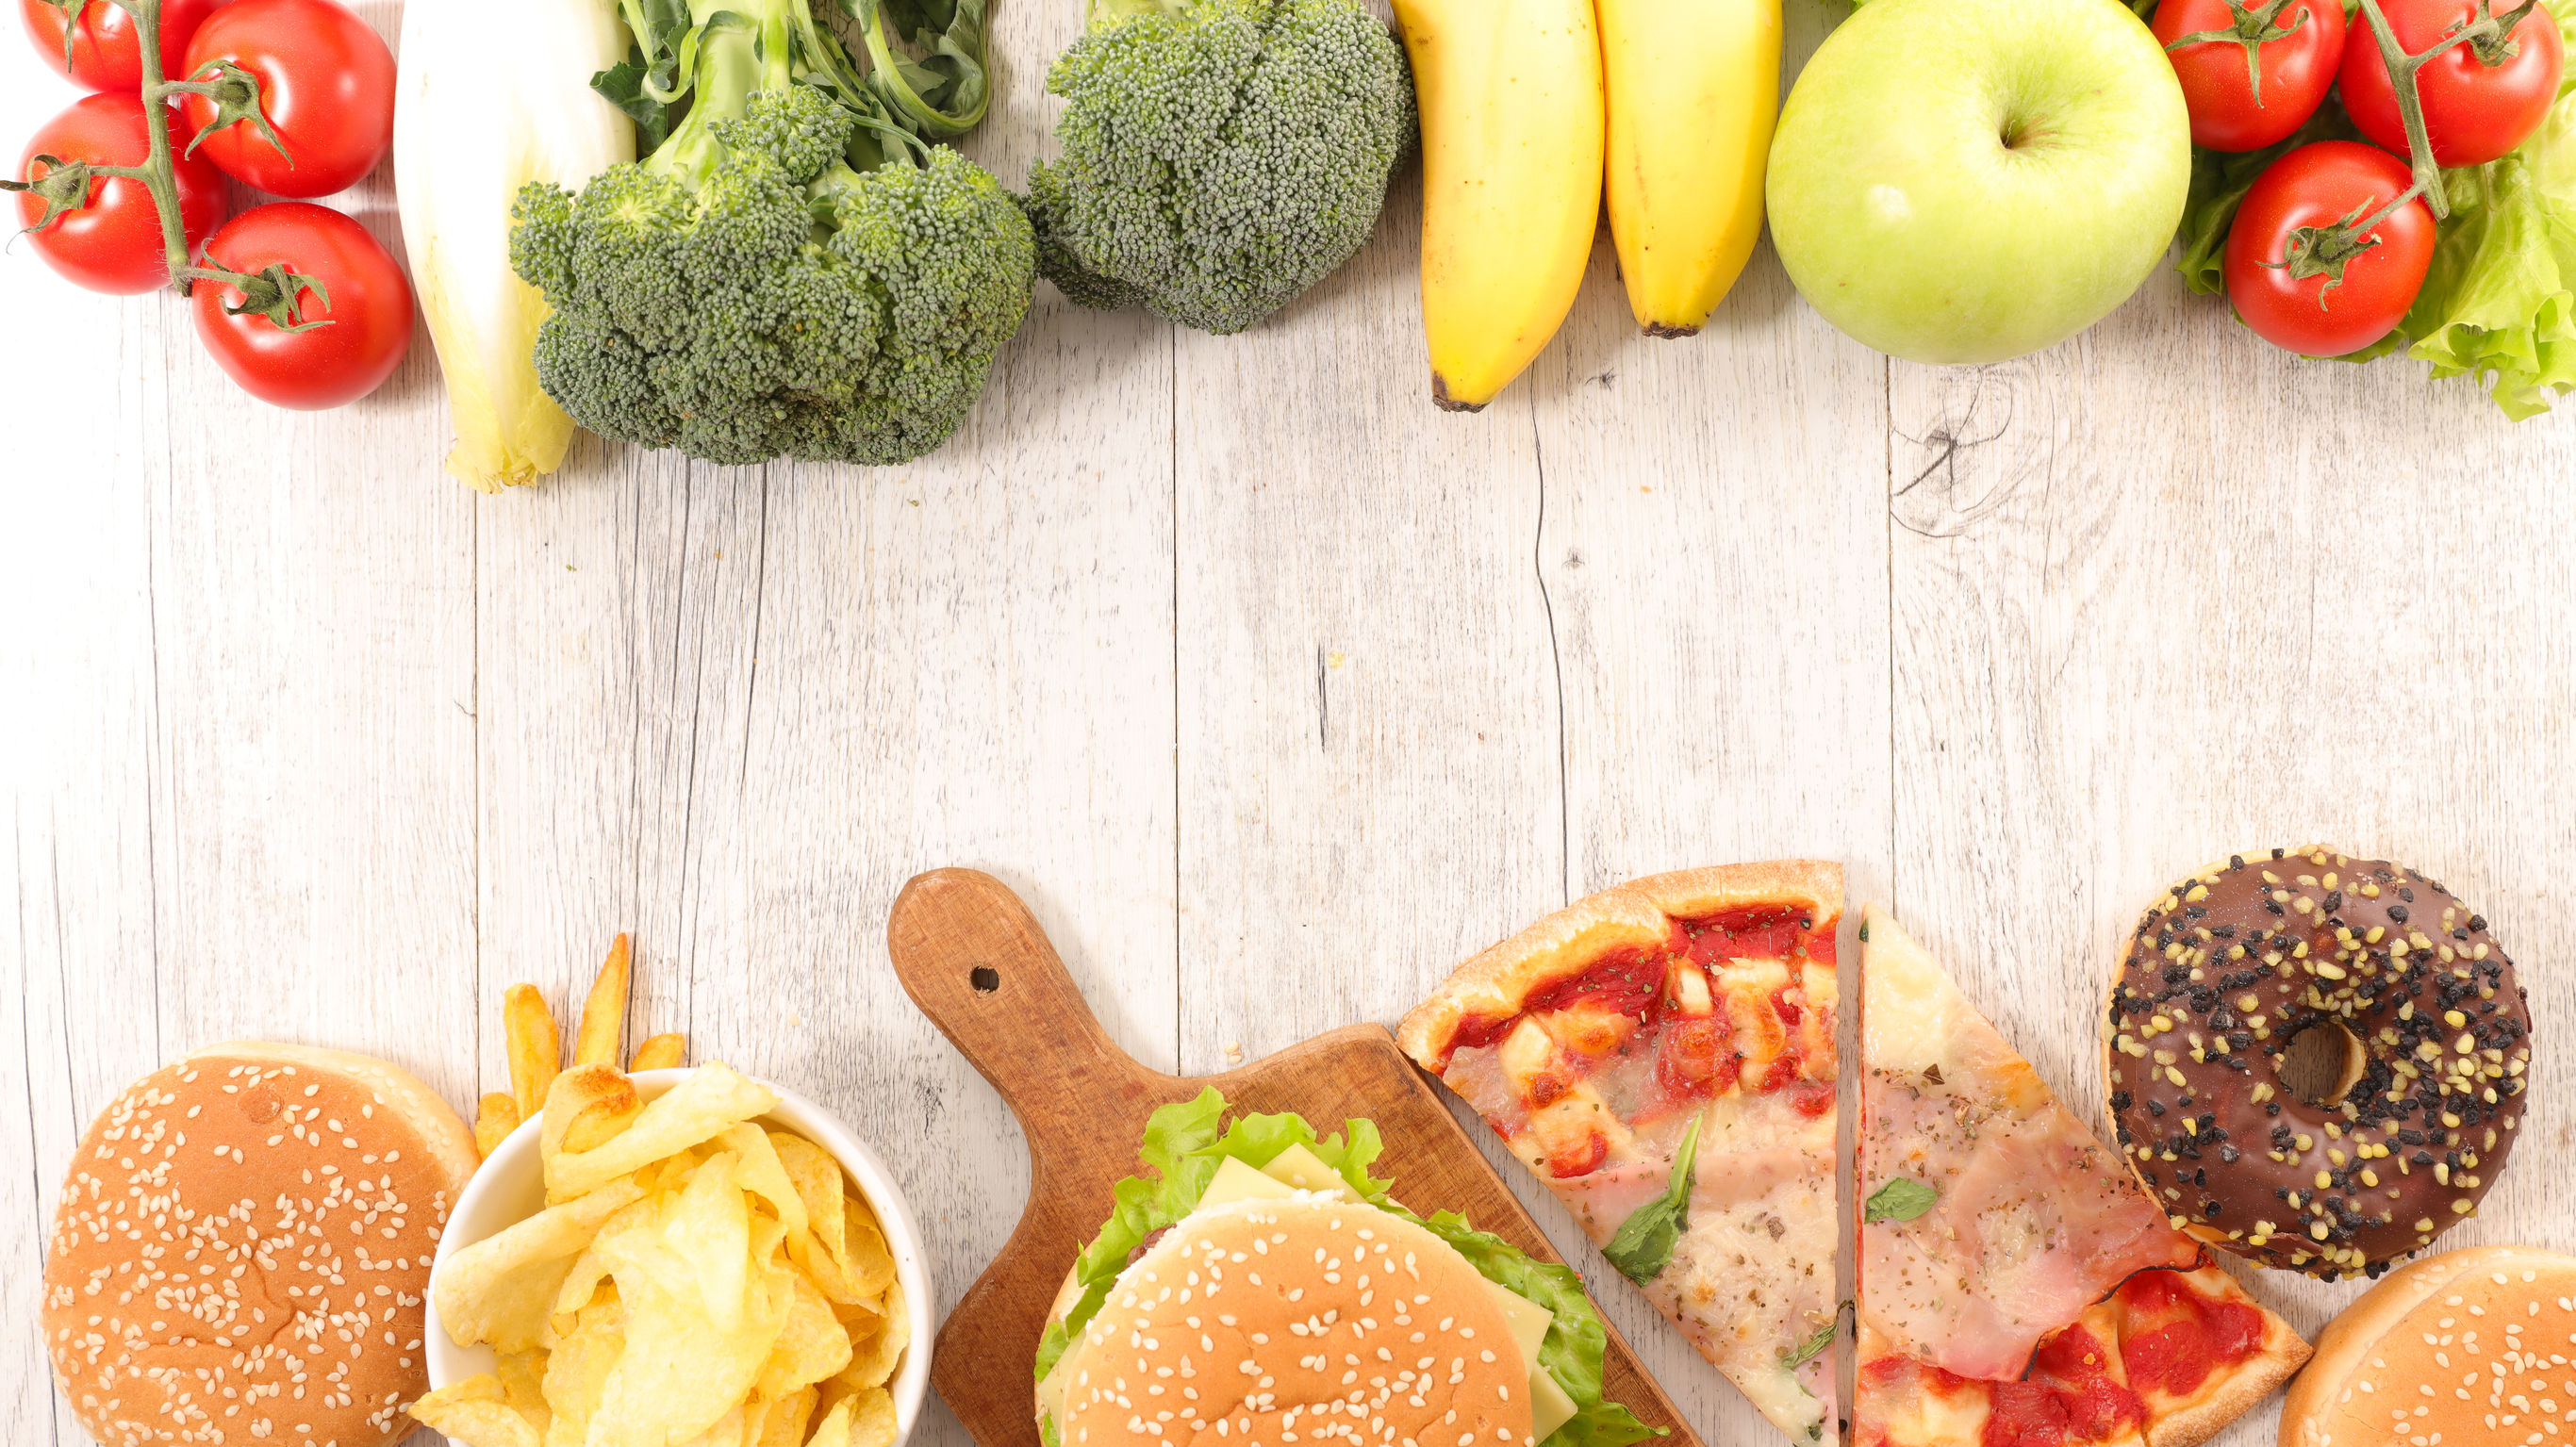 processed foods and healthy foods